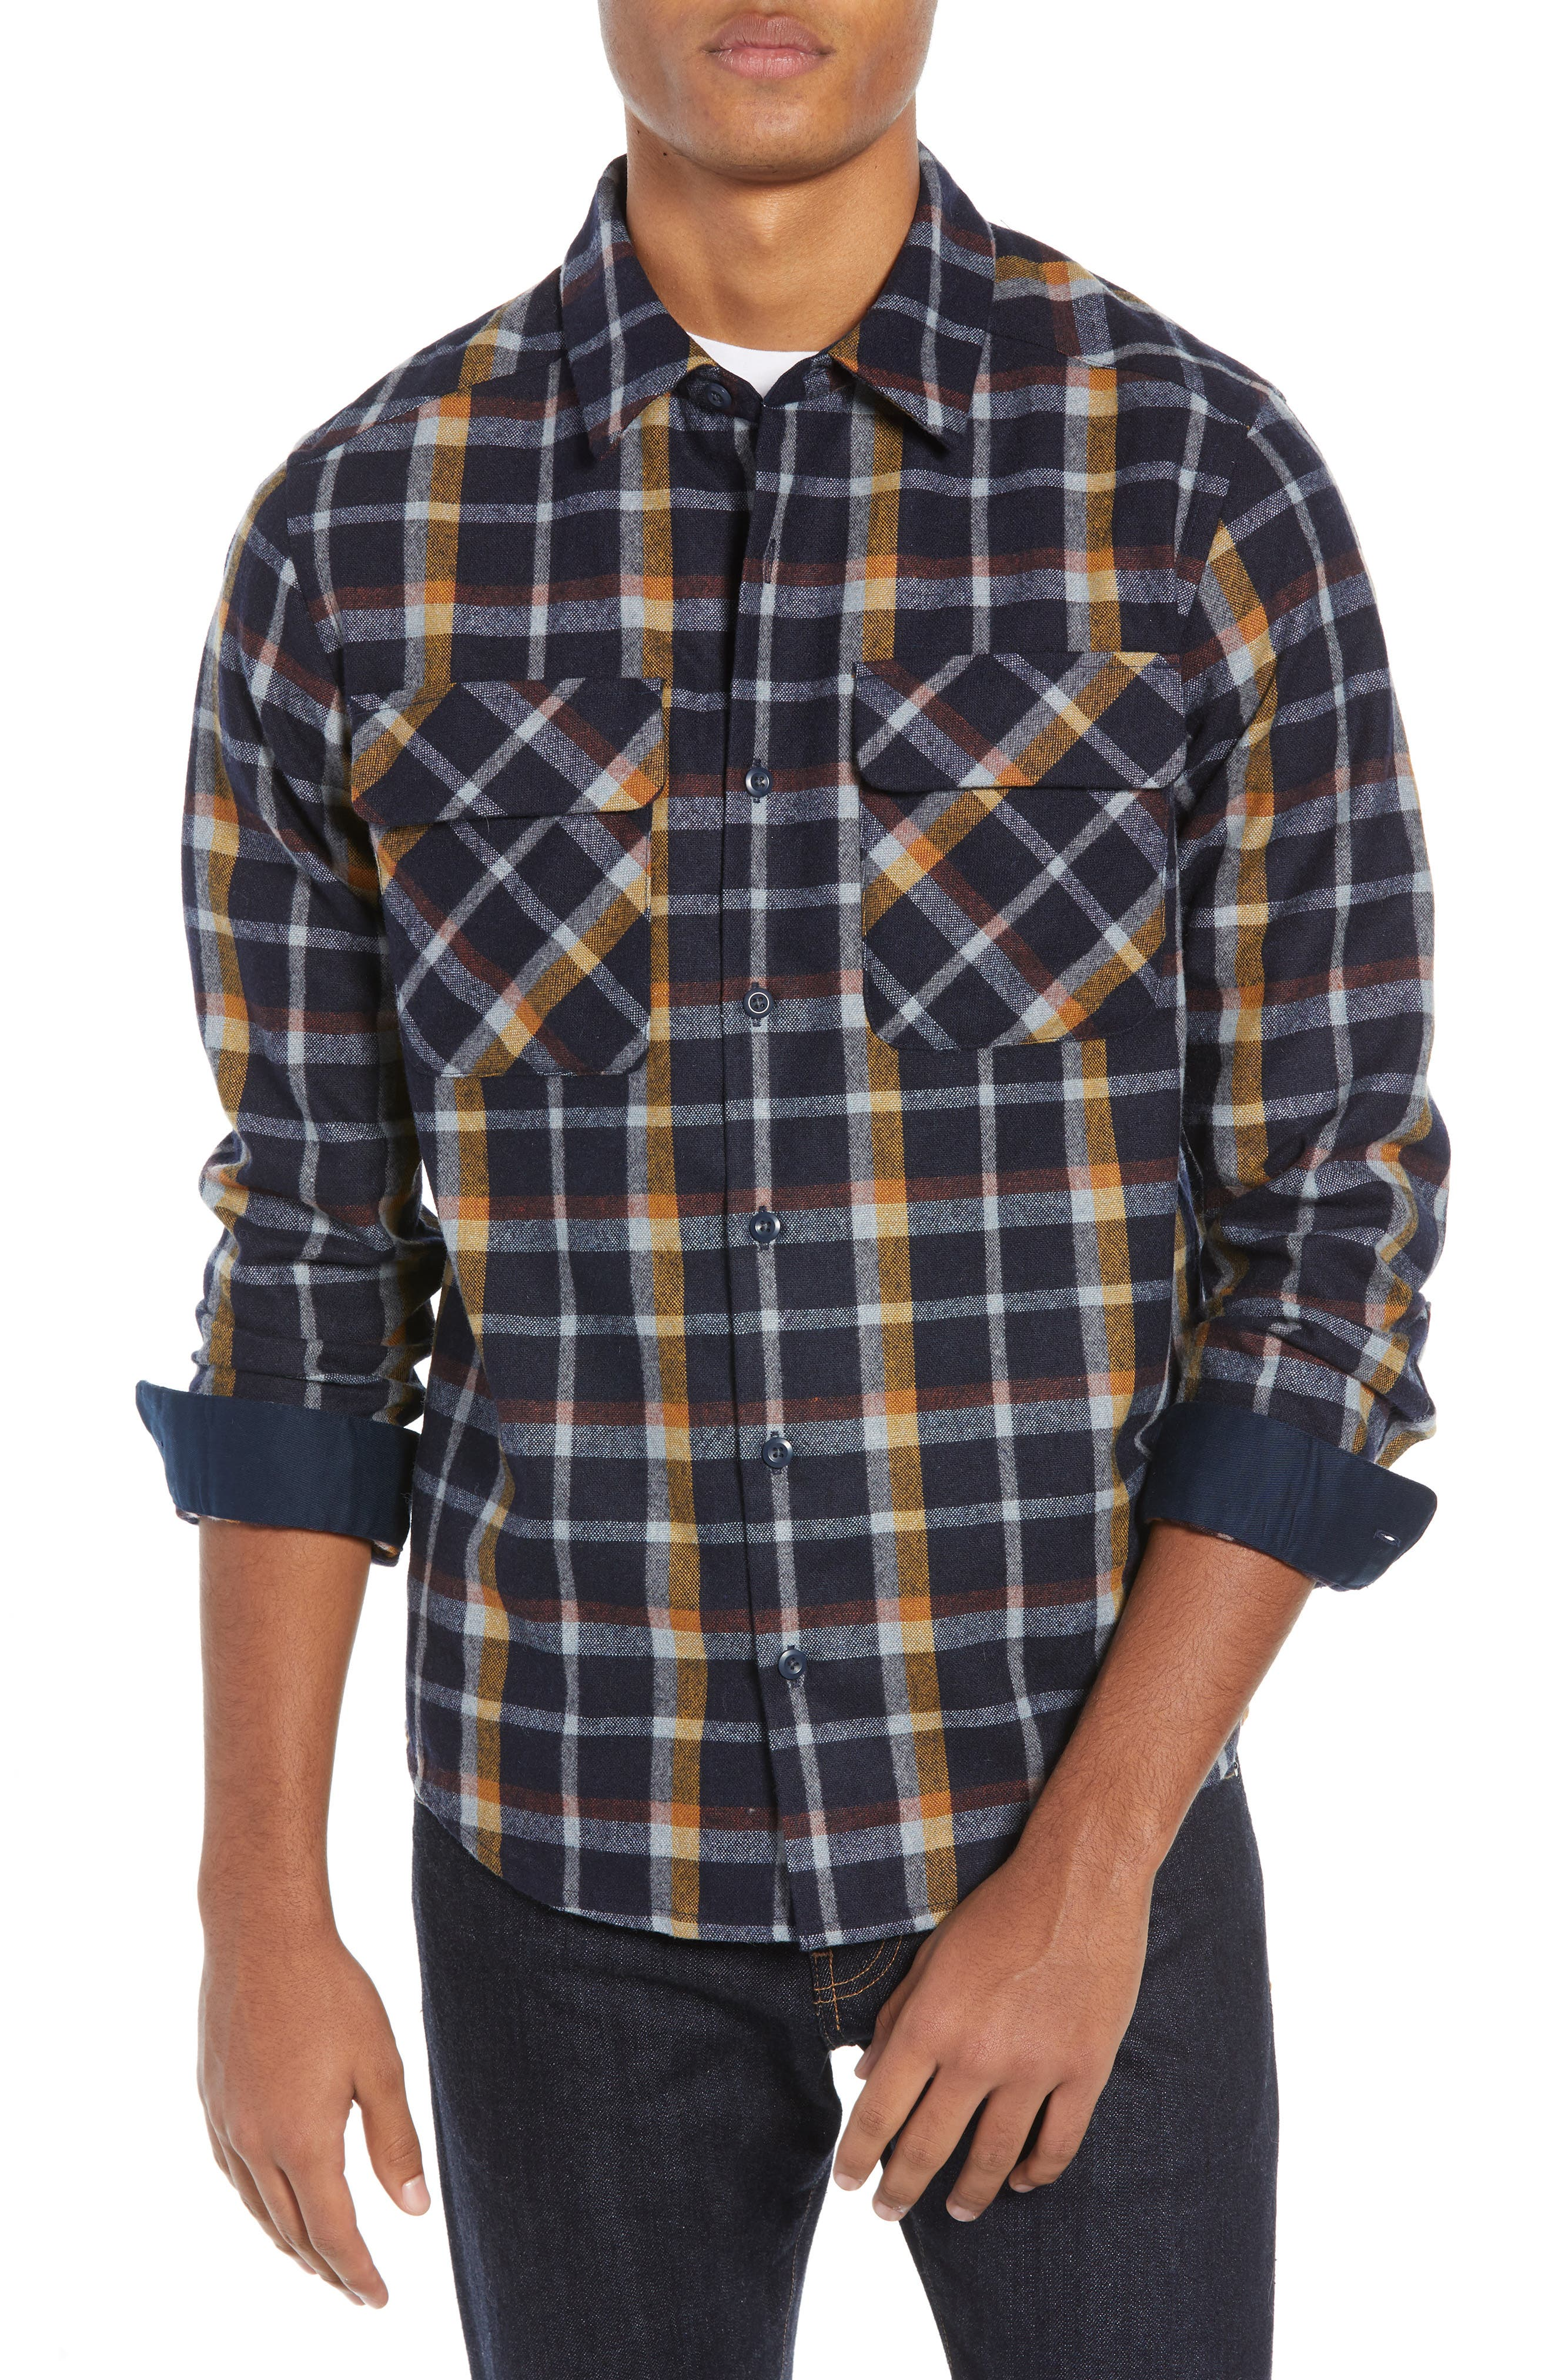 Recycled Wool Blend Shirt, Main, color, REBEL PLAID/ NAVY BLUE